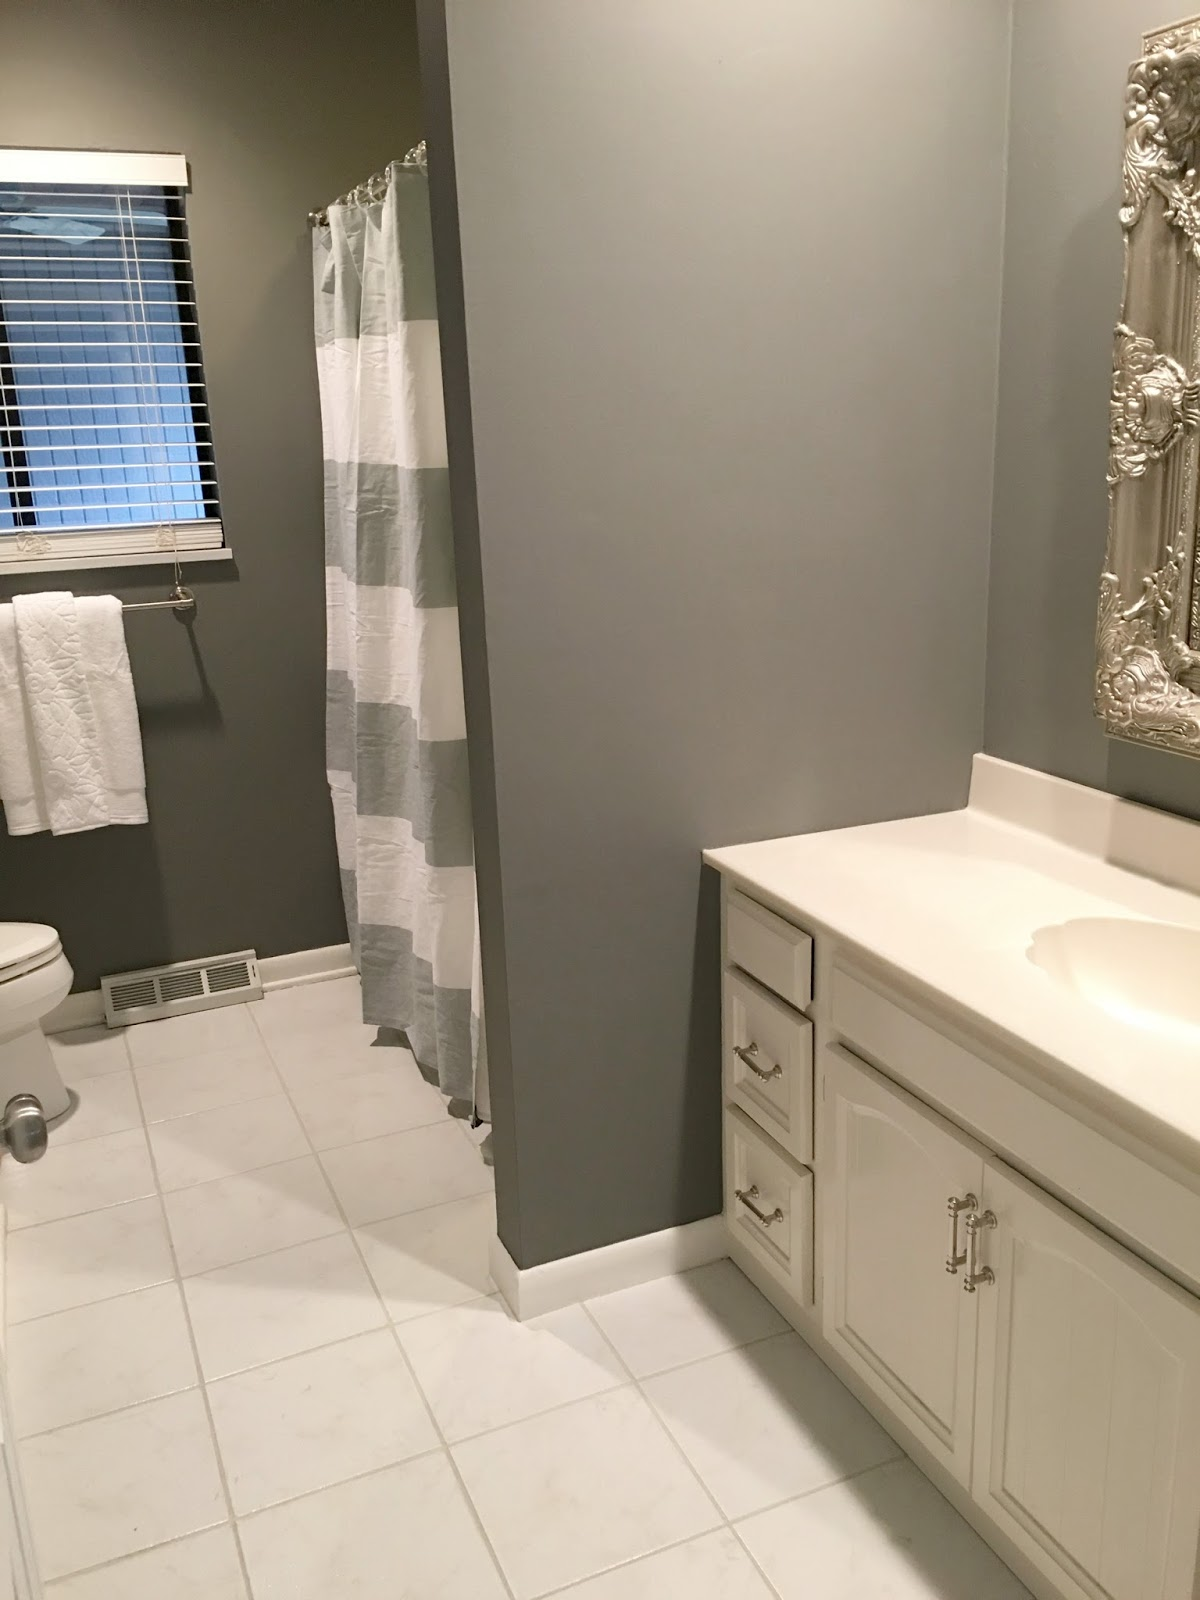 Luxury DIY Bathroom Remodel on a Budget